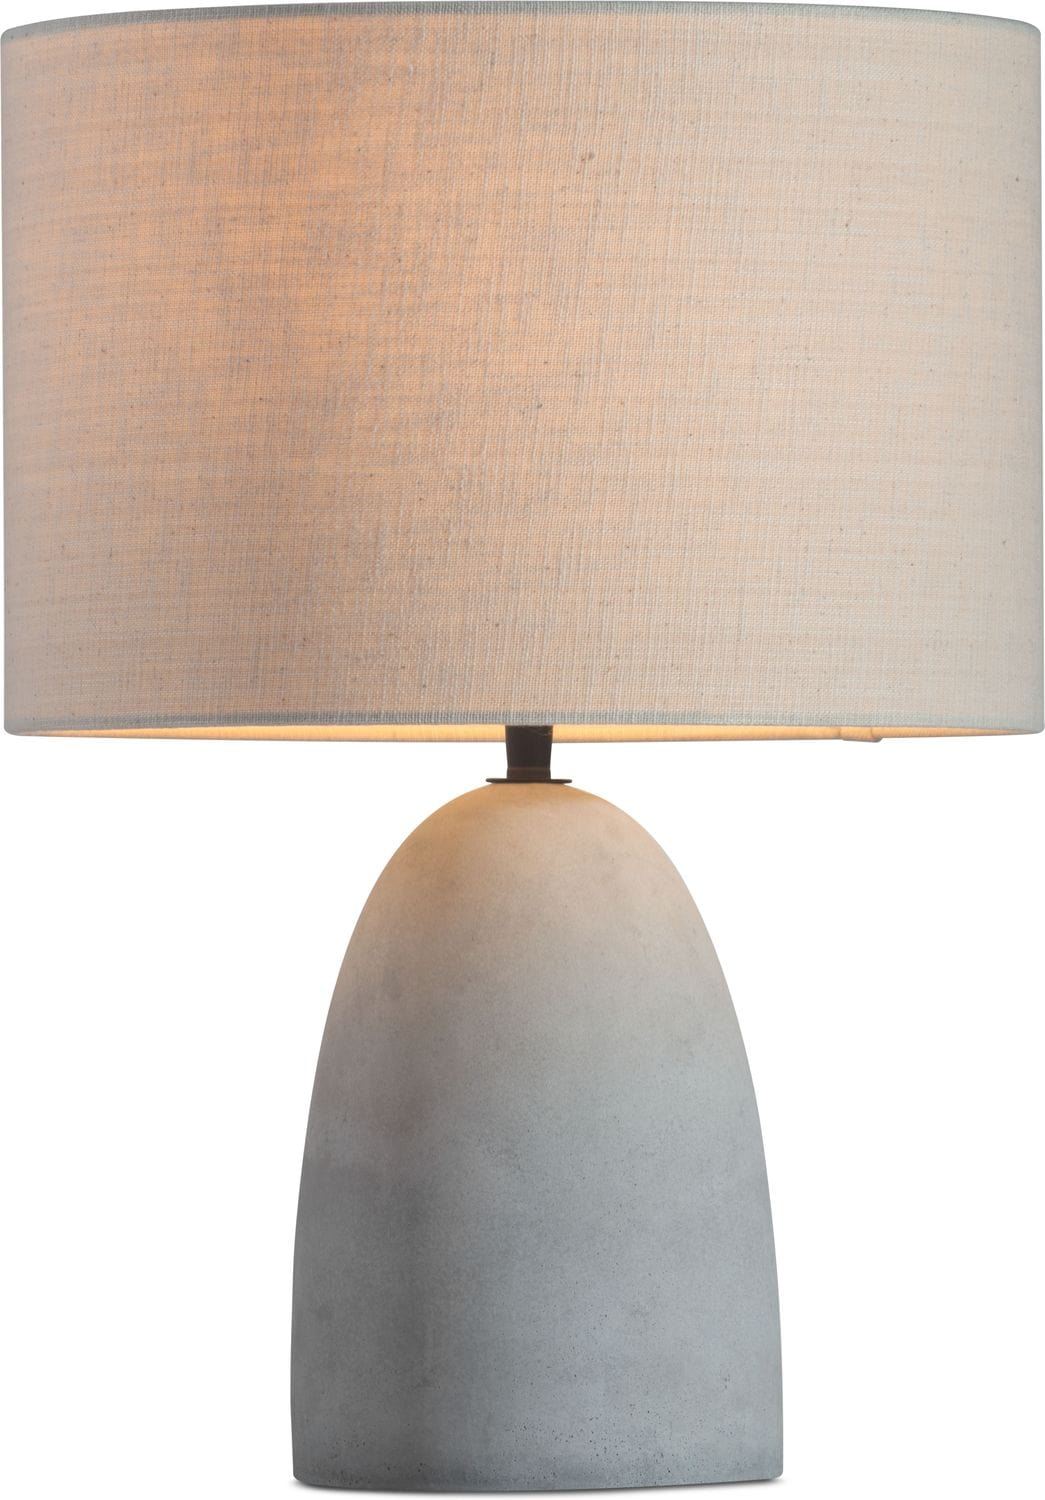 Home Accessories - Concrete Table Lamp